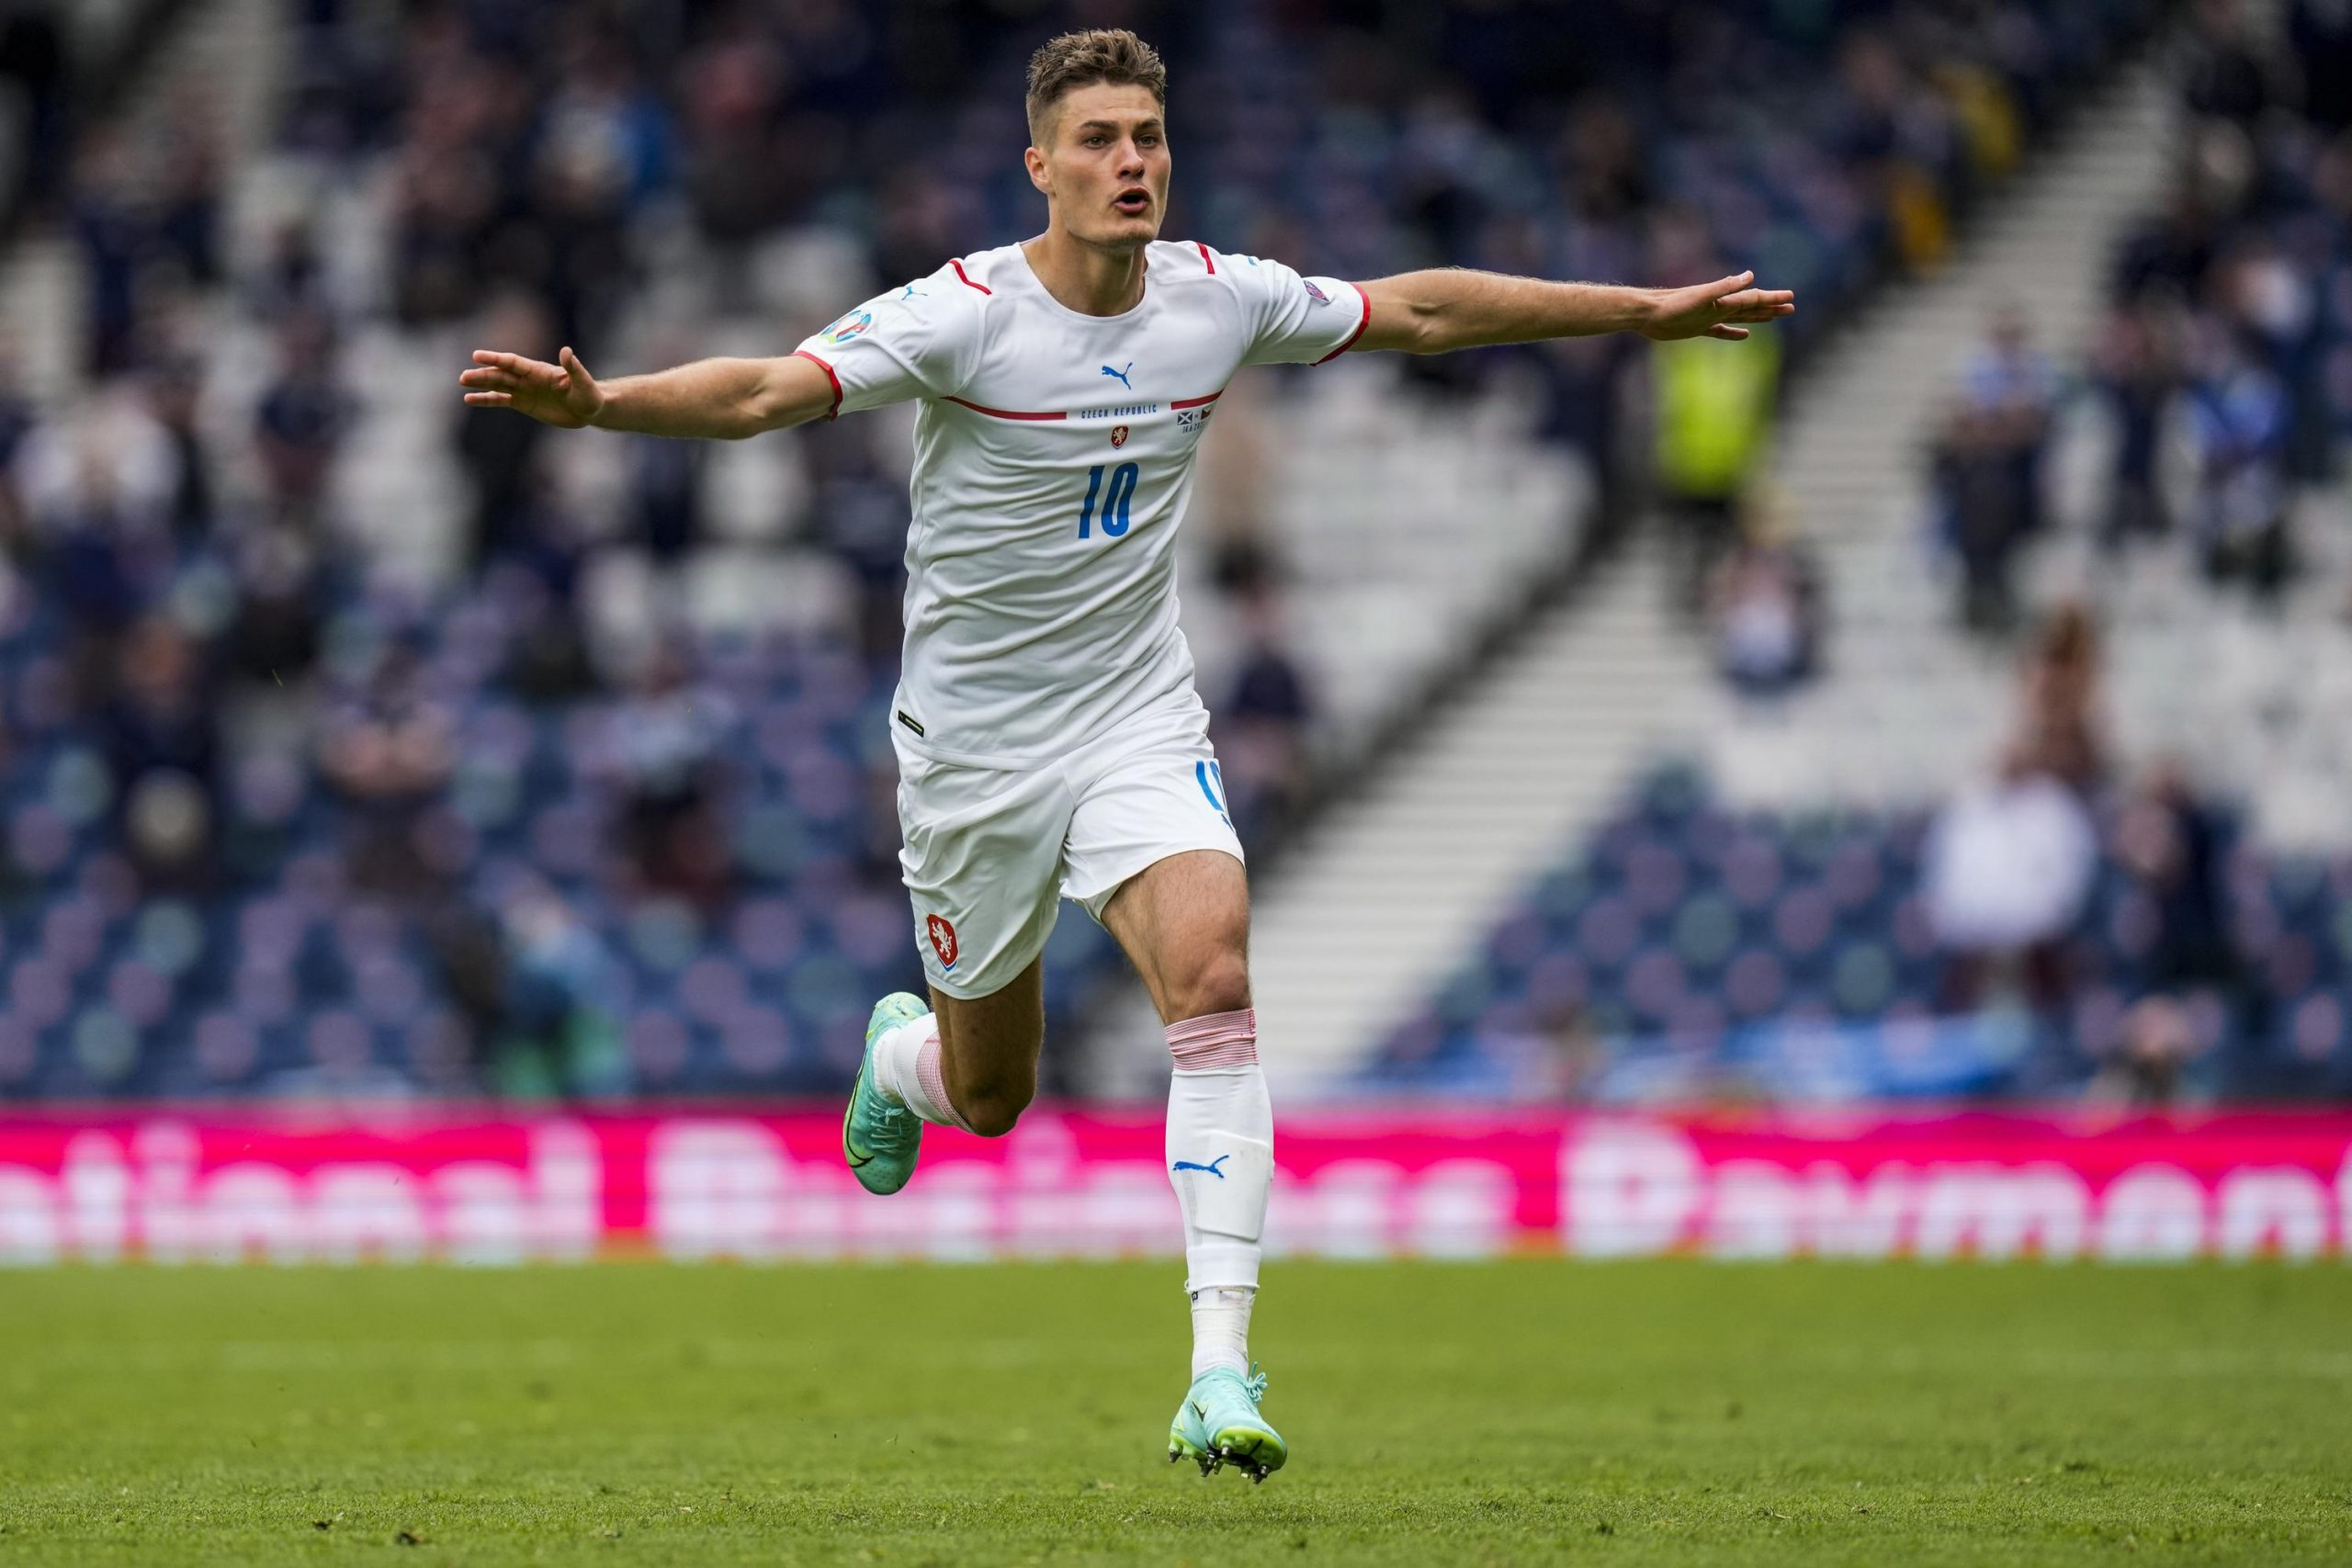 Schick scores from way out, Czechs beat Scots at Euro 2020